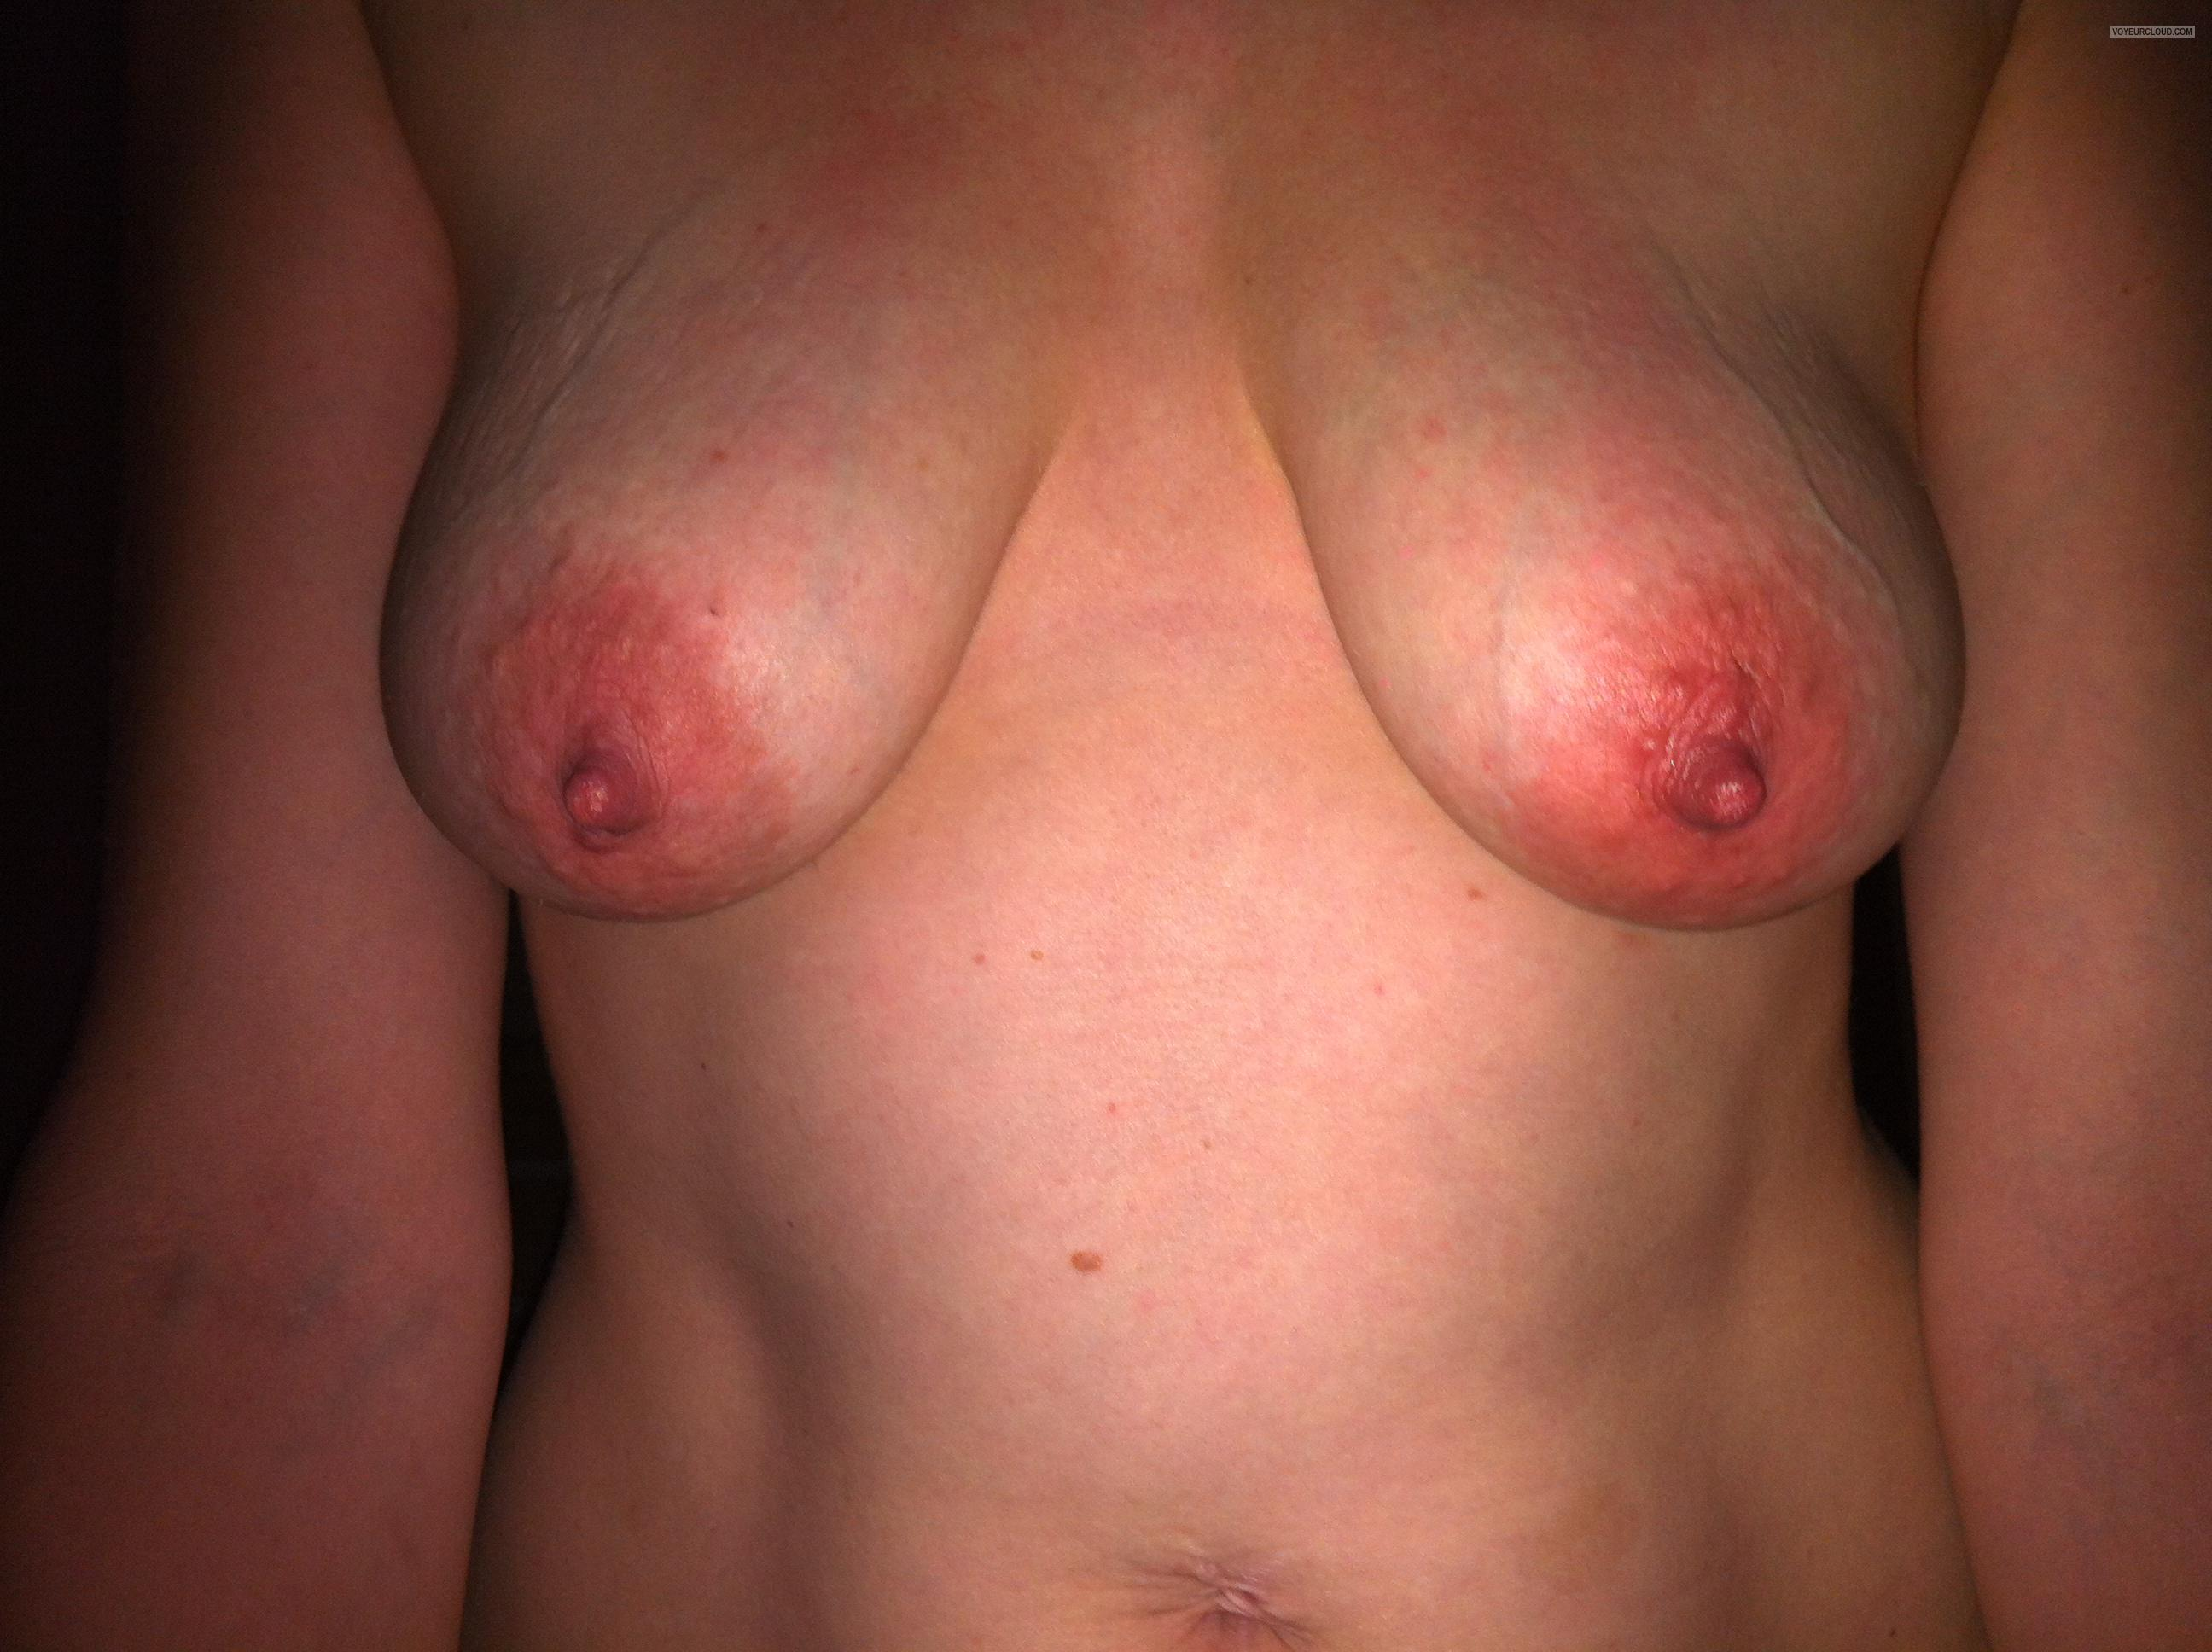 Tit Flash: Wife's Medium Tits - Jess Uk from United Kingdom